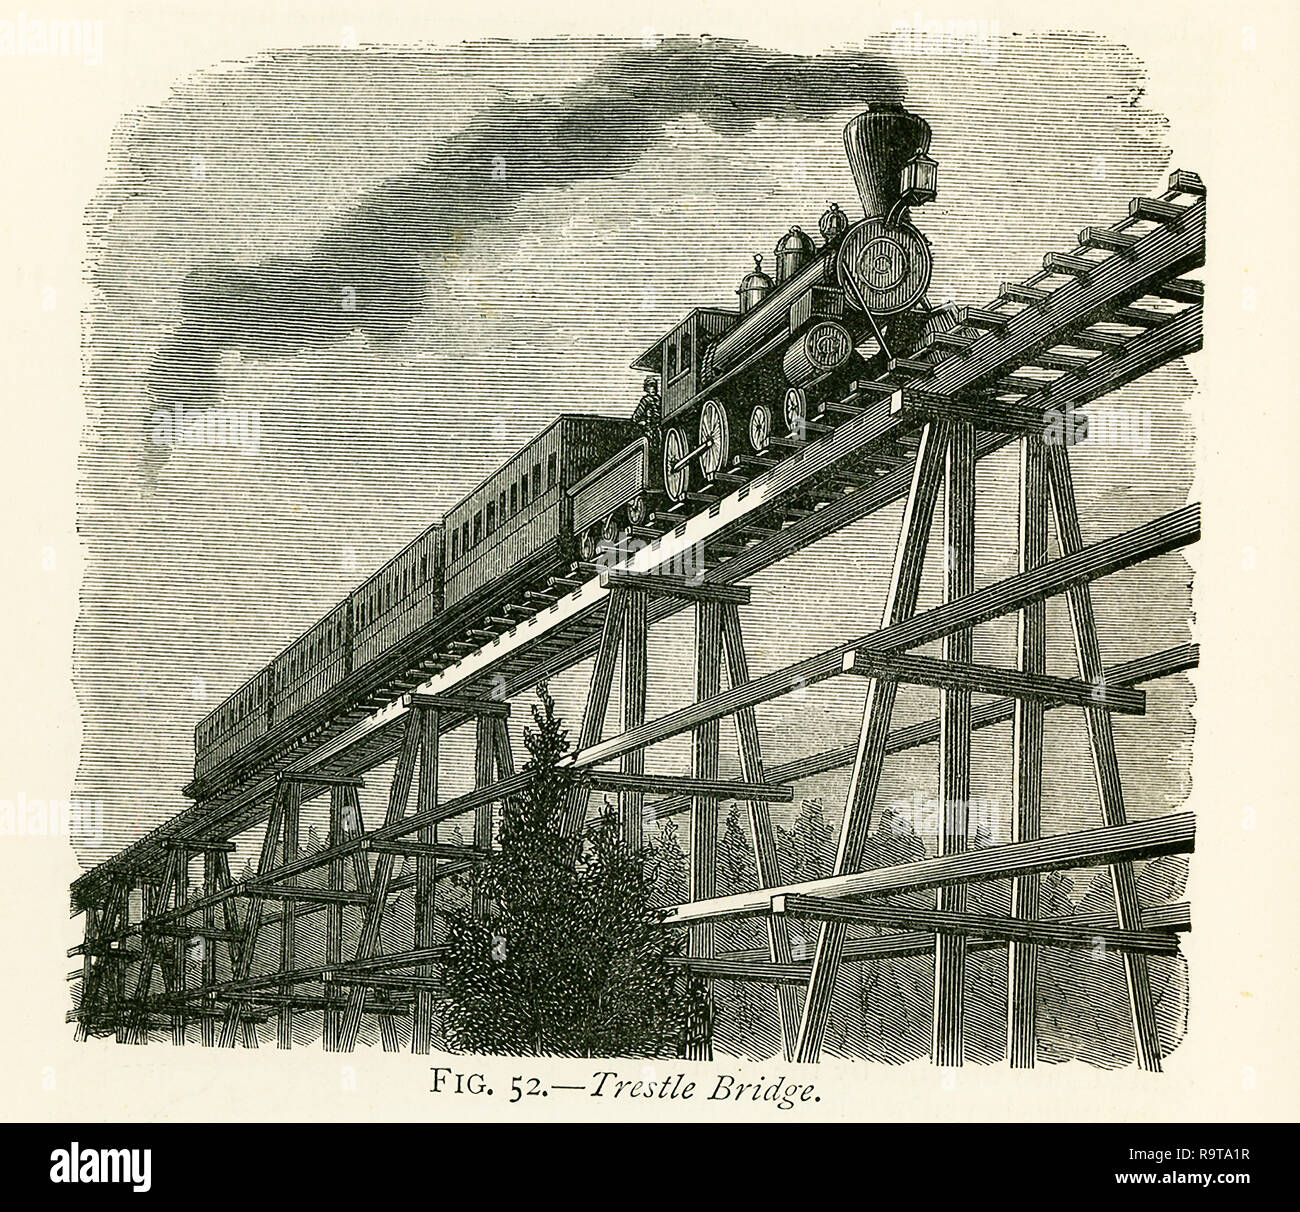 This illustration dates to the 1870s and shows a trestle bridge that is part of the rail line of the Great Pacific railway - the transcontinental railway. At Sherman, 549 miles from Omaha, the line attains the summit of its track over the Black Hills, and the highest point on any railway in the world (in the 1870s), being 8,242 ft. above the level of the sea. Wild and desolate scenery characterizes the district round Sherman, and the hills, in places covered with a dense growth of wood, will furnish an immense supply of timber for years to come. The timber-sheds erected over the line, and the  - Stock Image